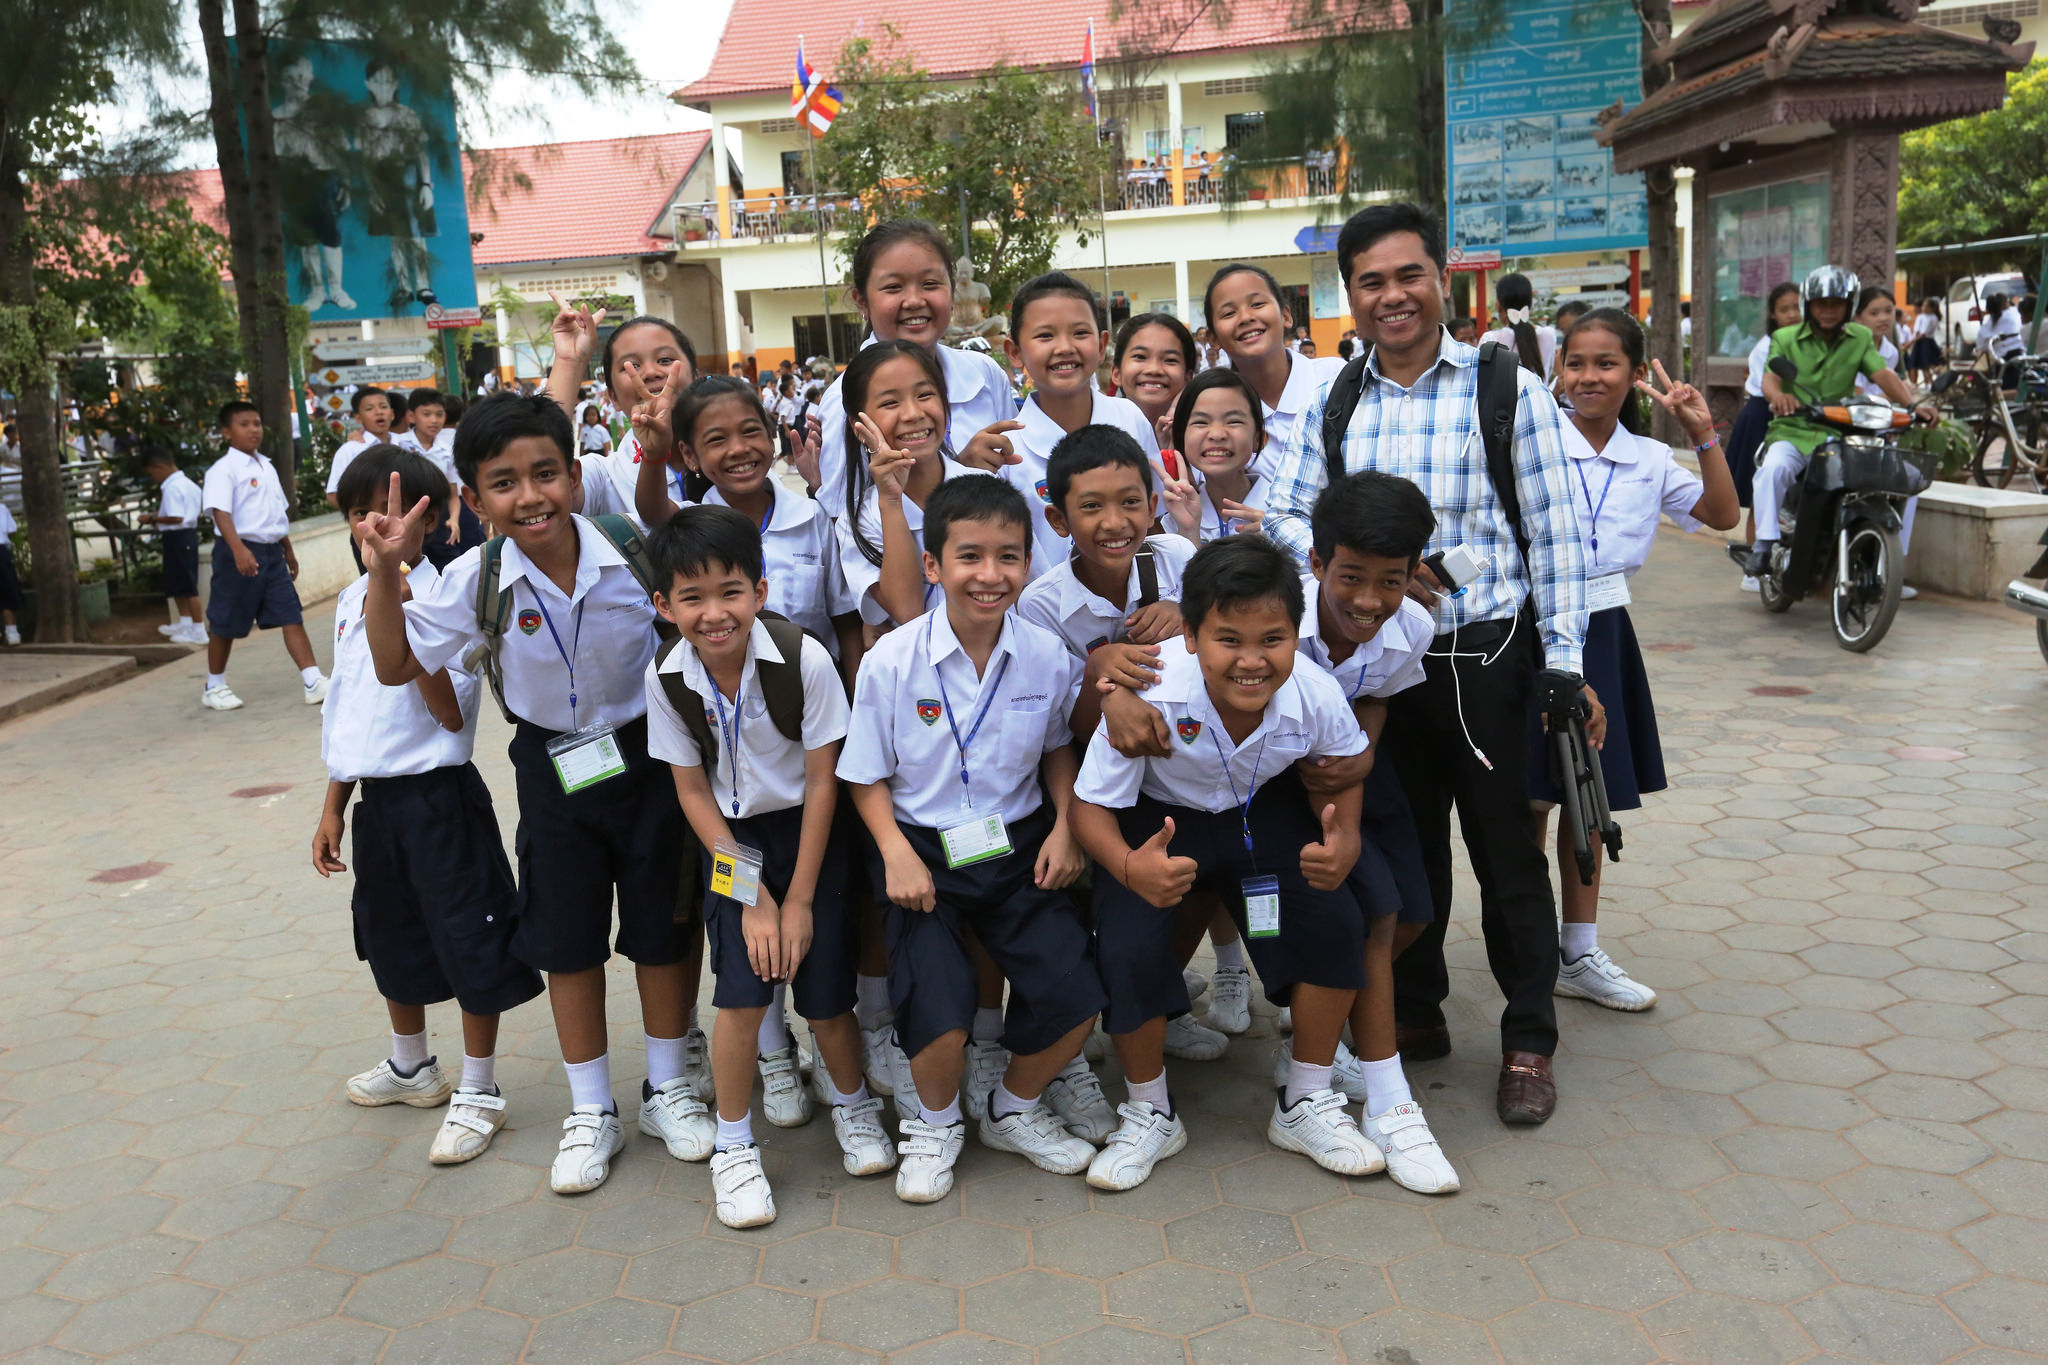 Students at Wat Bo Primary School, Cambodia. Credit: GPE/Chor Sokunthea